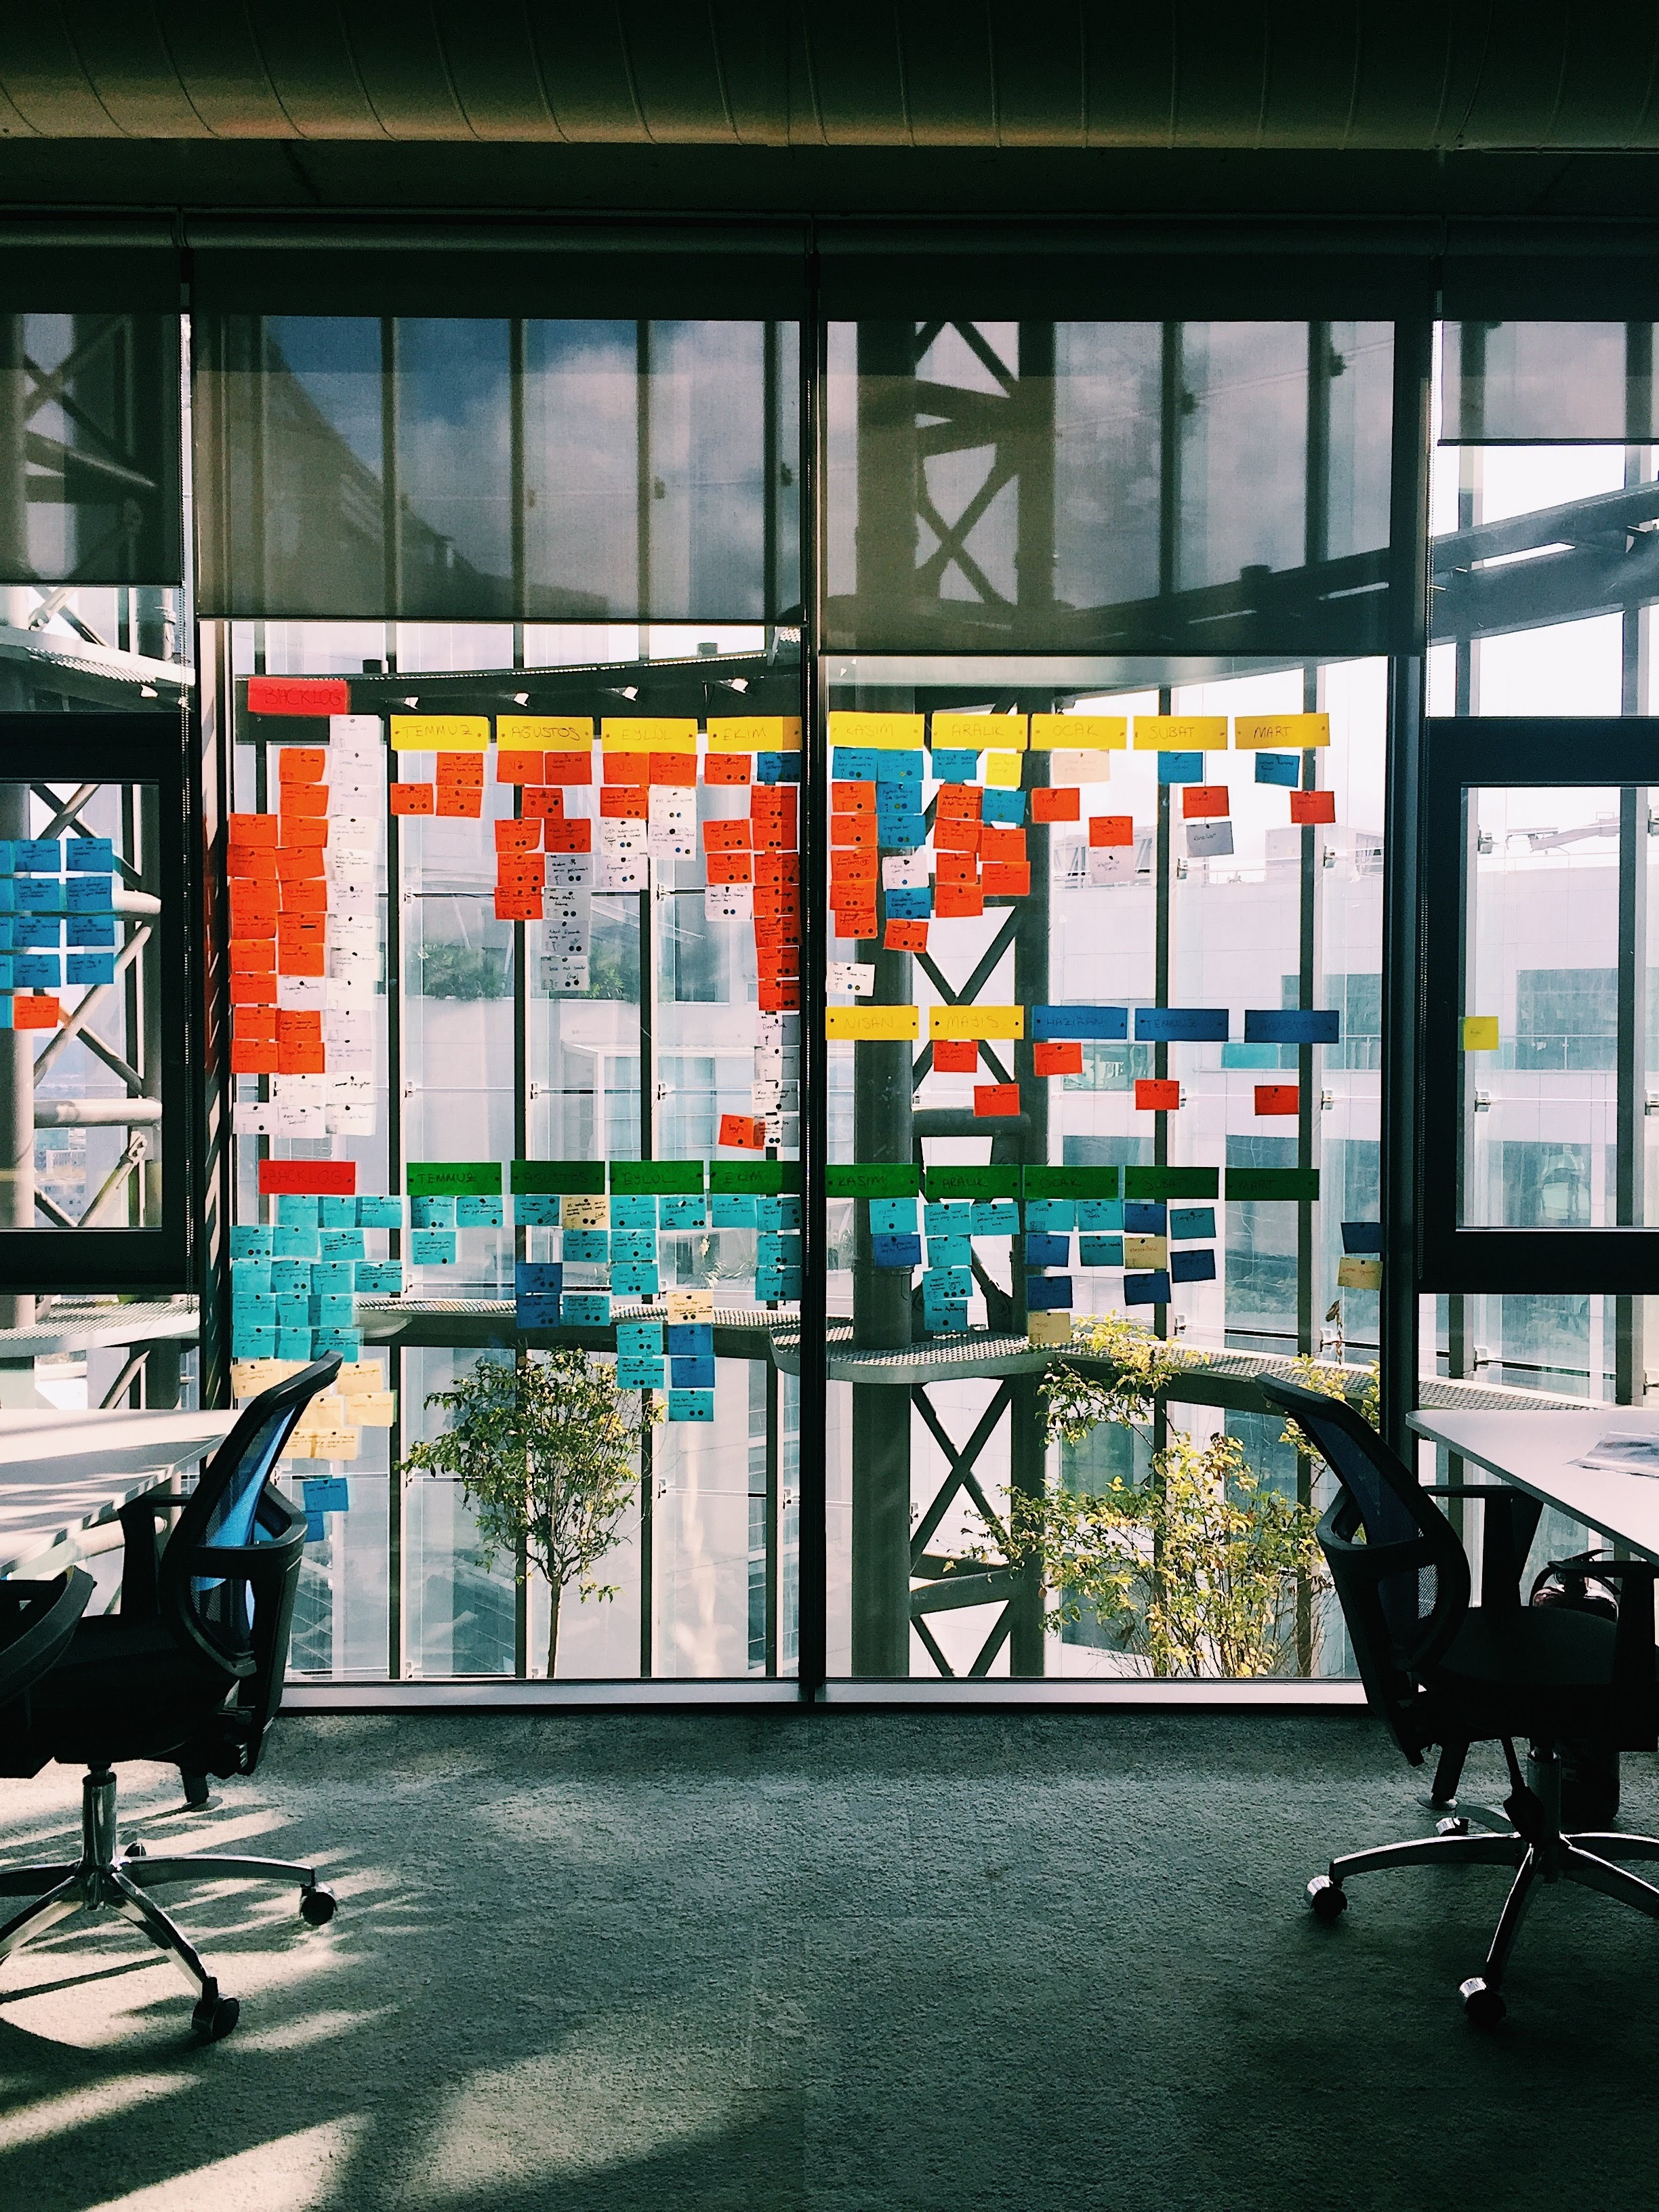 glass walls with colourful scrum post its all over them